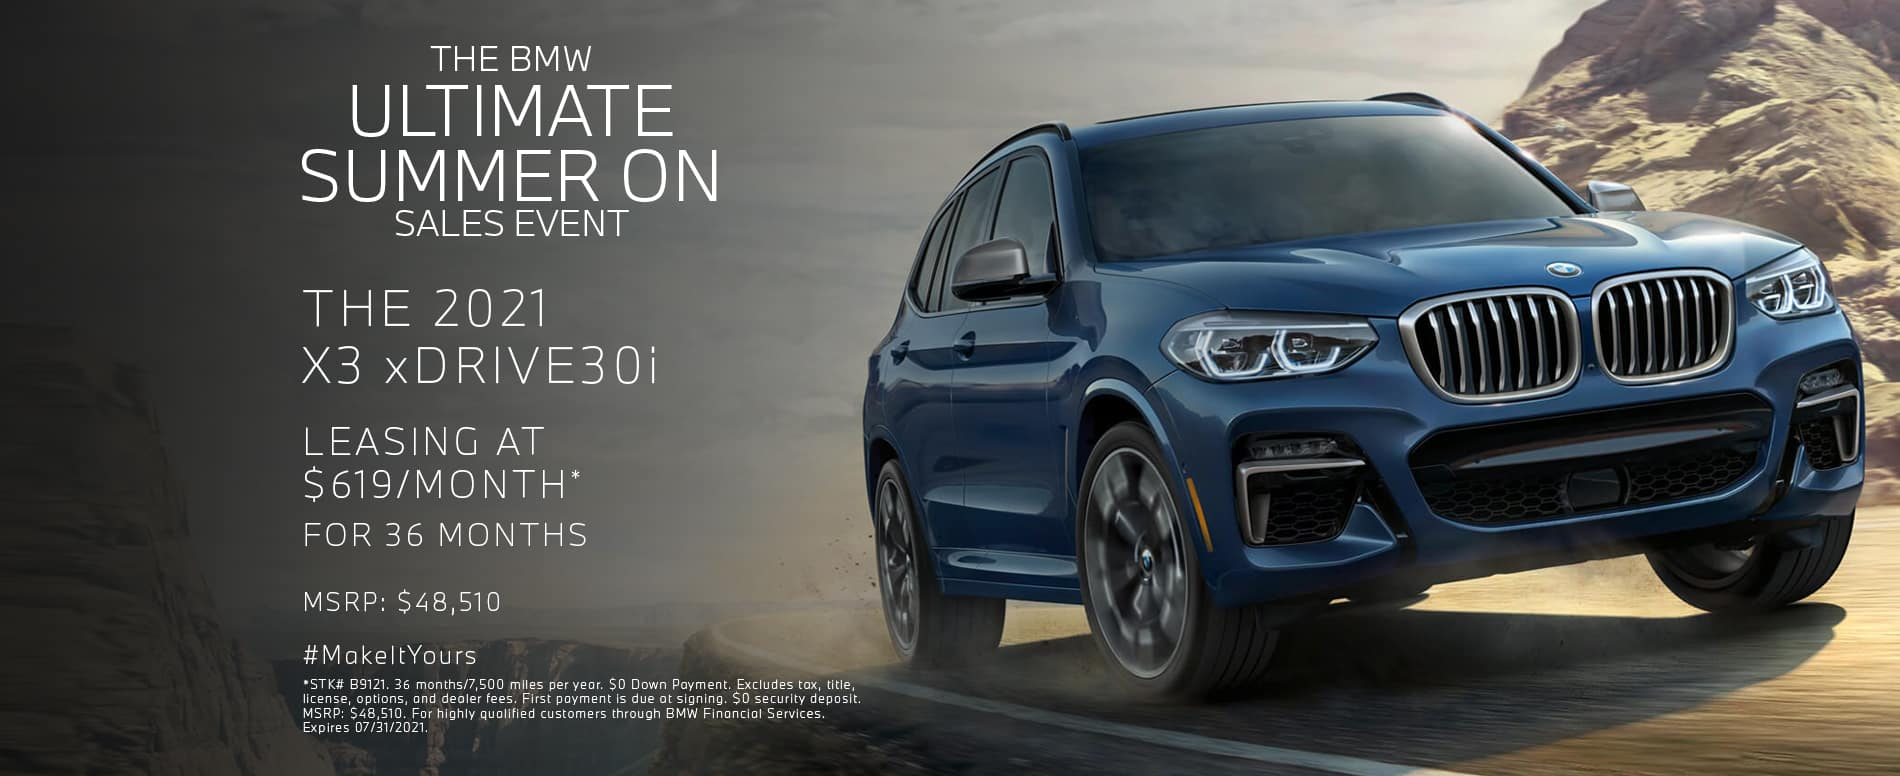 Lease a new X3 xDrive30i for $619/mo.